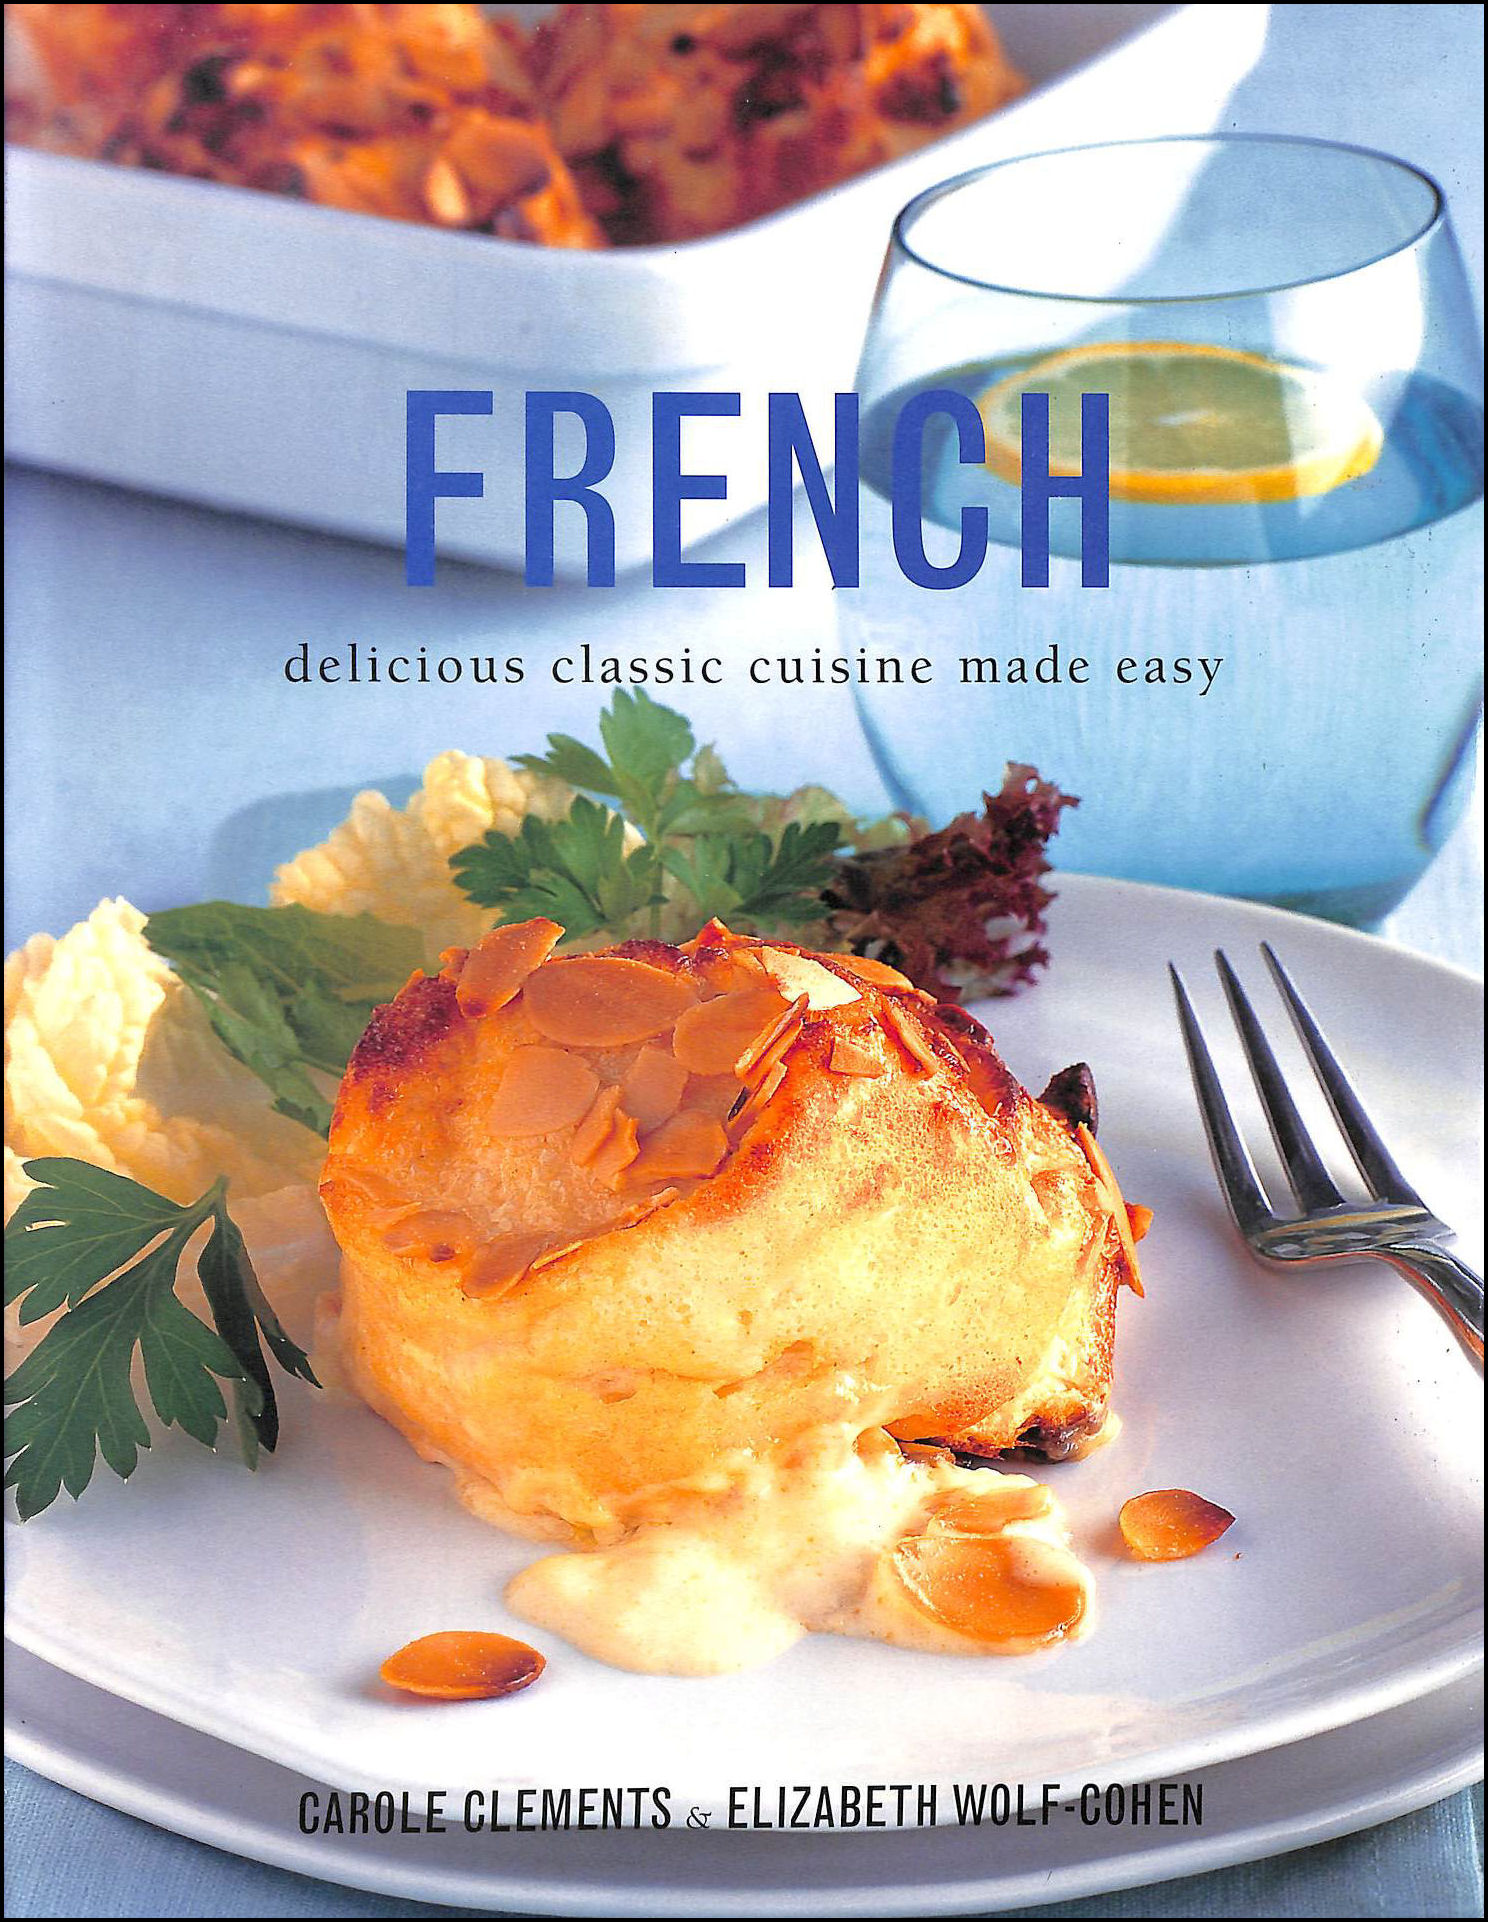 French - Delicious Classic Cuisine Made Easy, Clements, Carole; Wolf-Cohen, Elizabeth